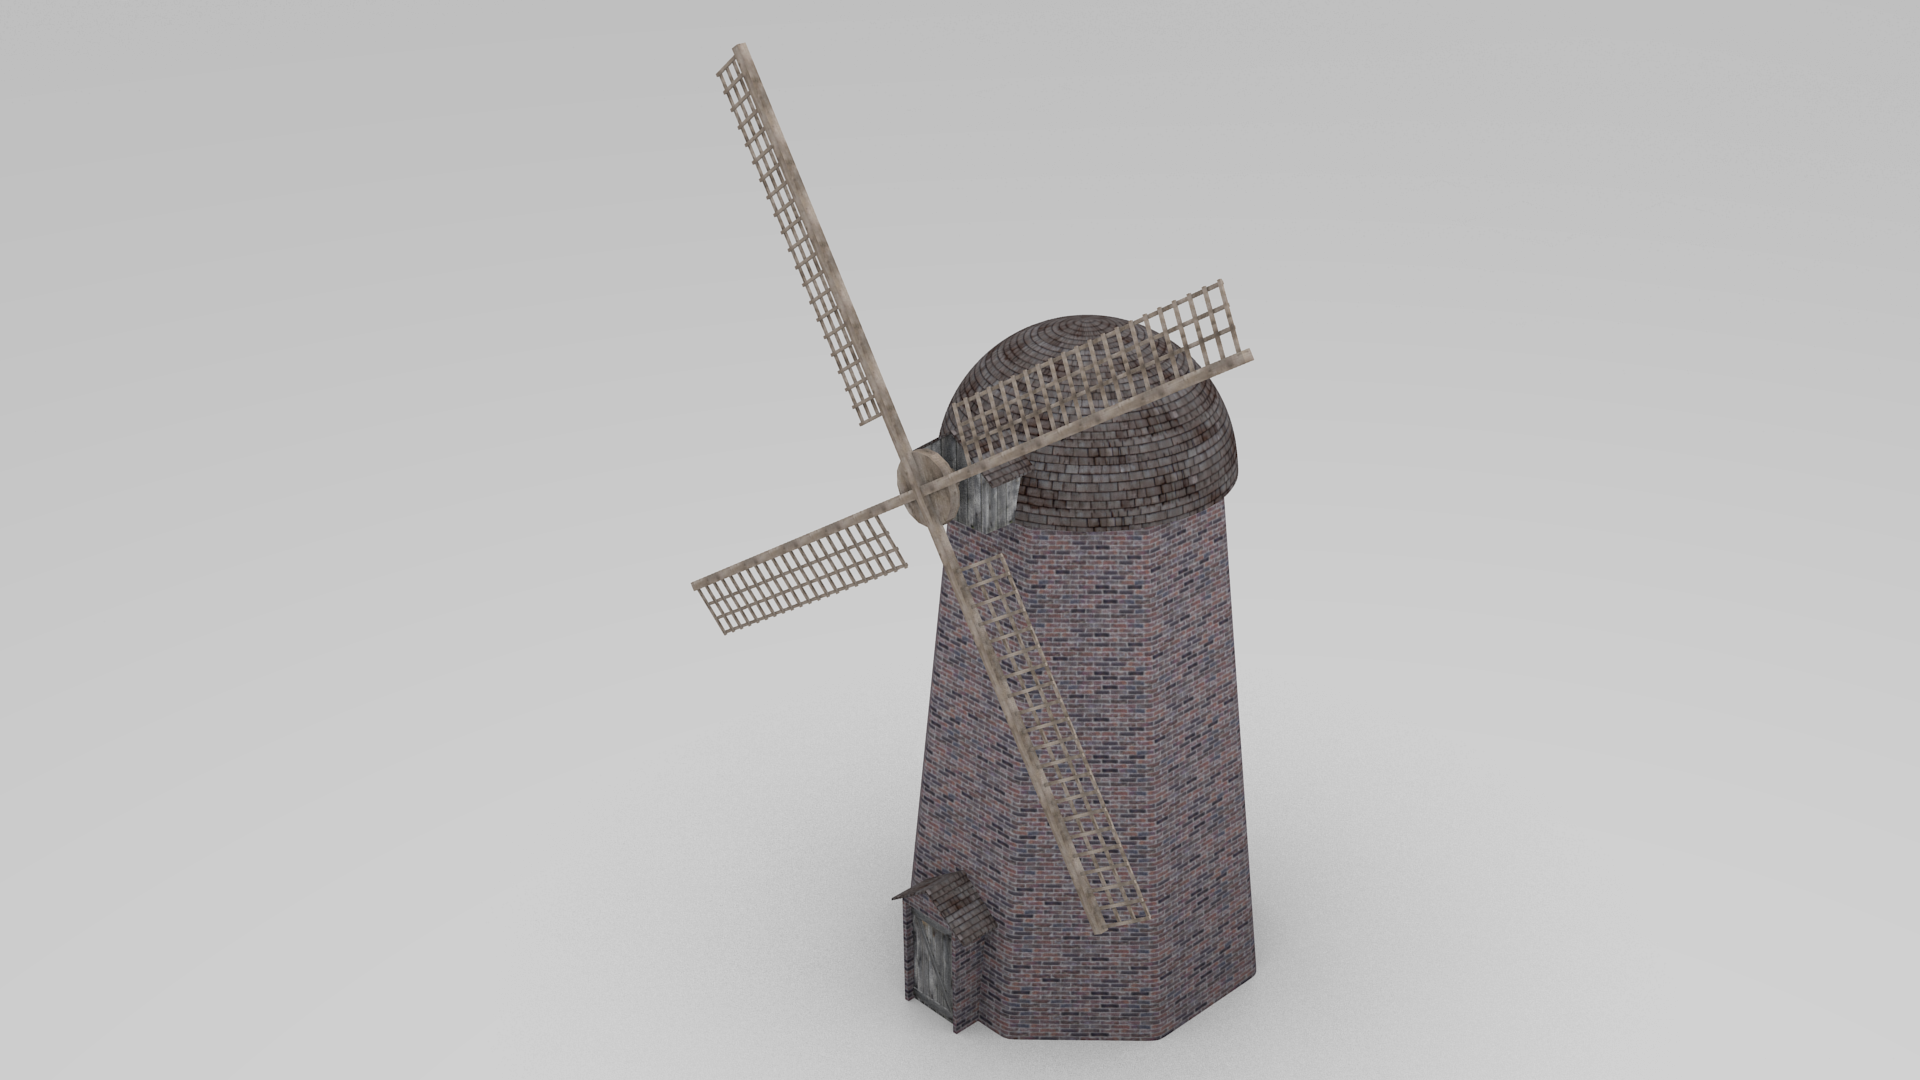 Animated wind mill